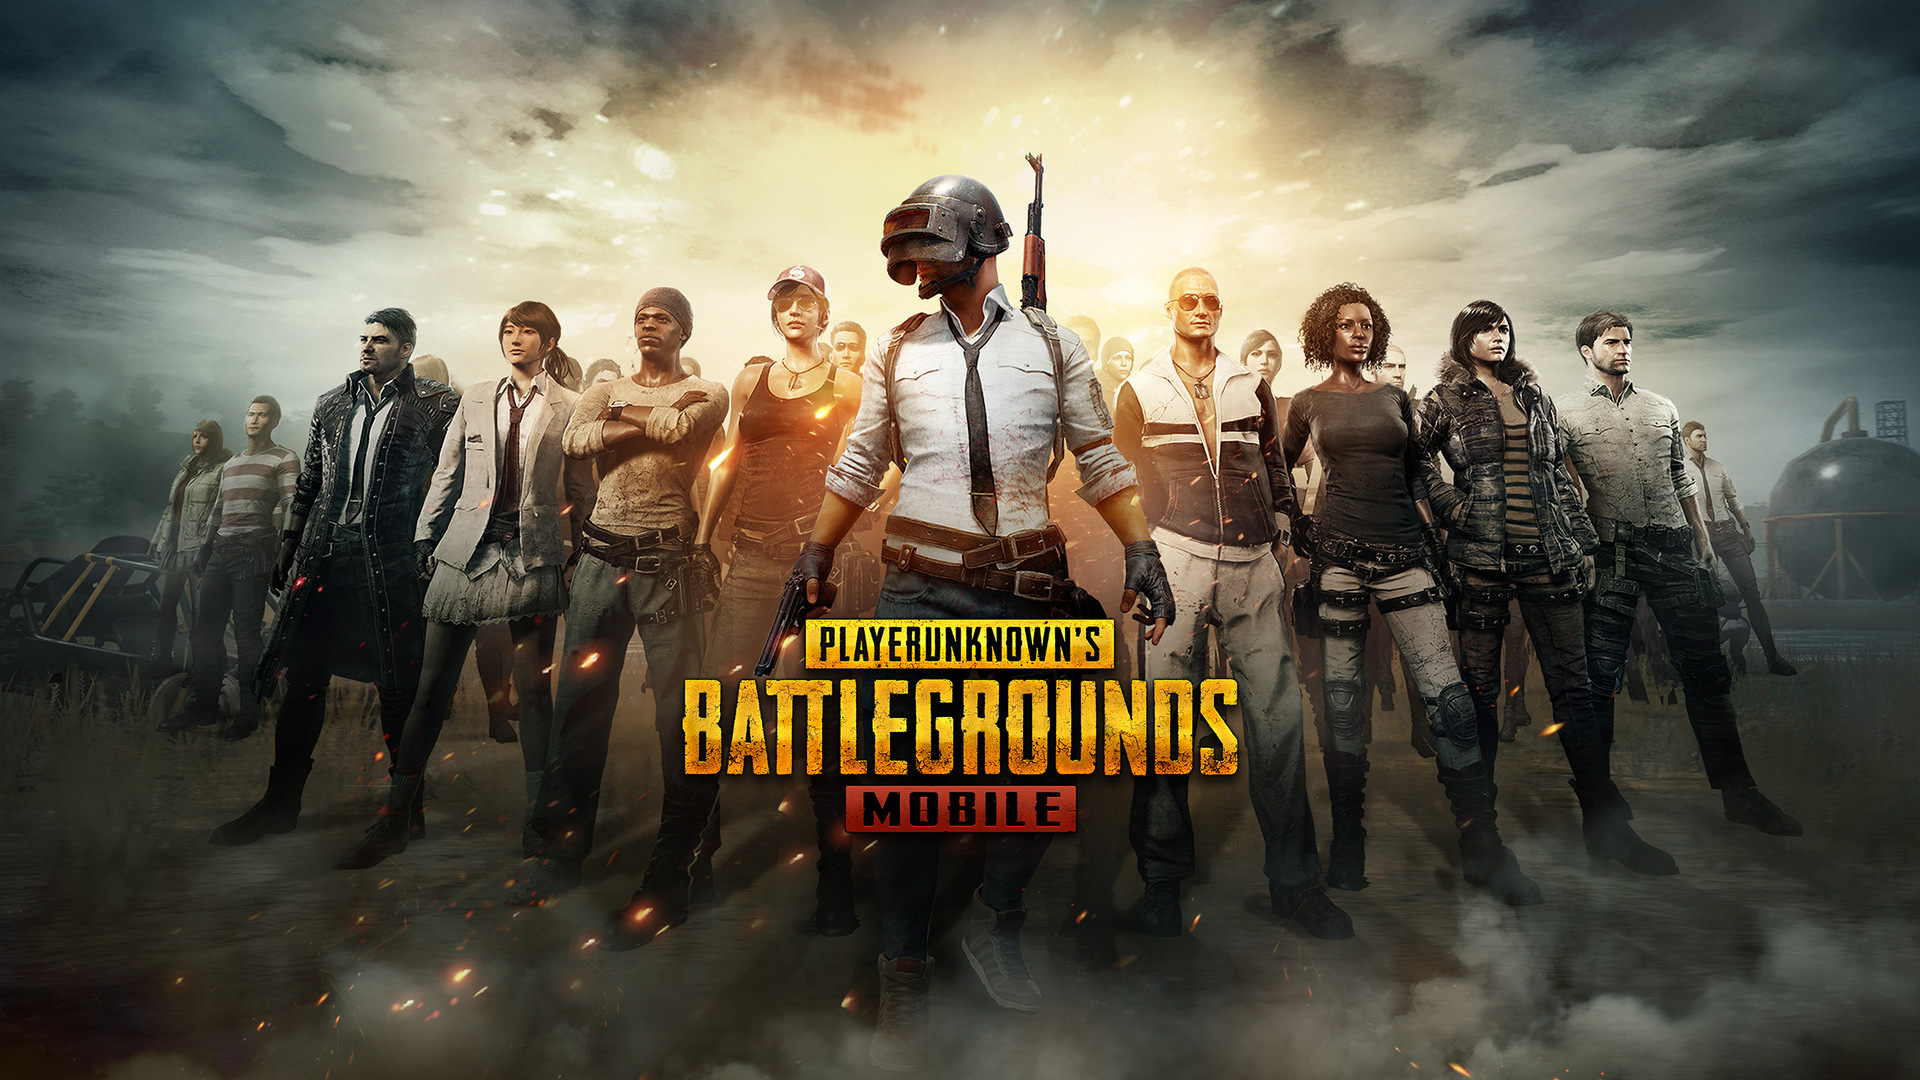 Download Pubg 1 Wallpapers To Your Cell Phone: 1920x1080 Pubg Mobile Laptop Full HD 1080P HD 4k